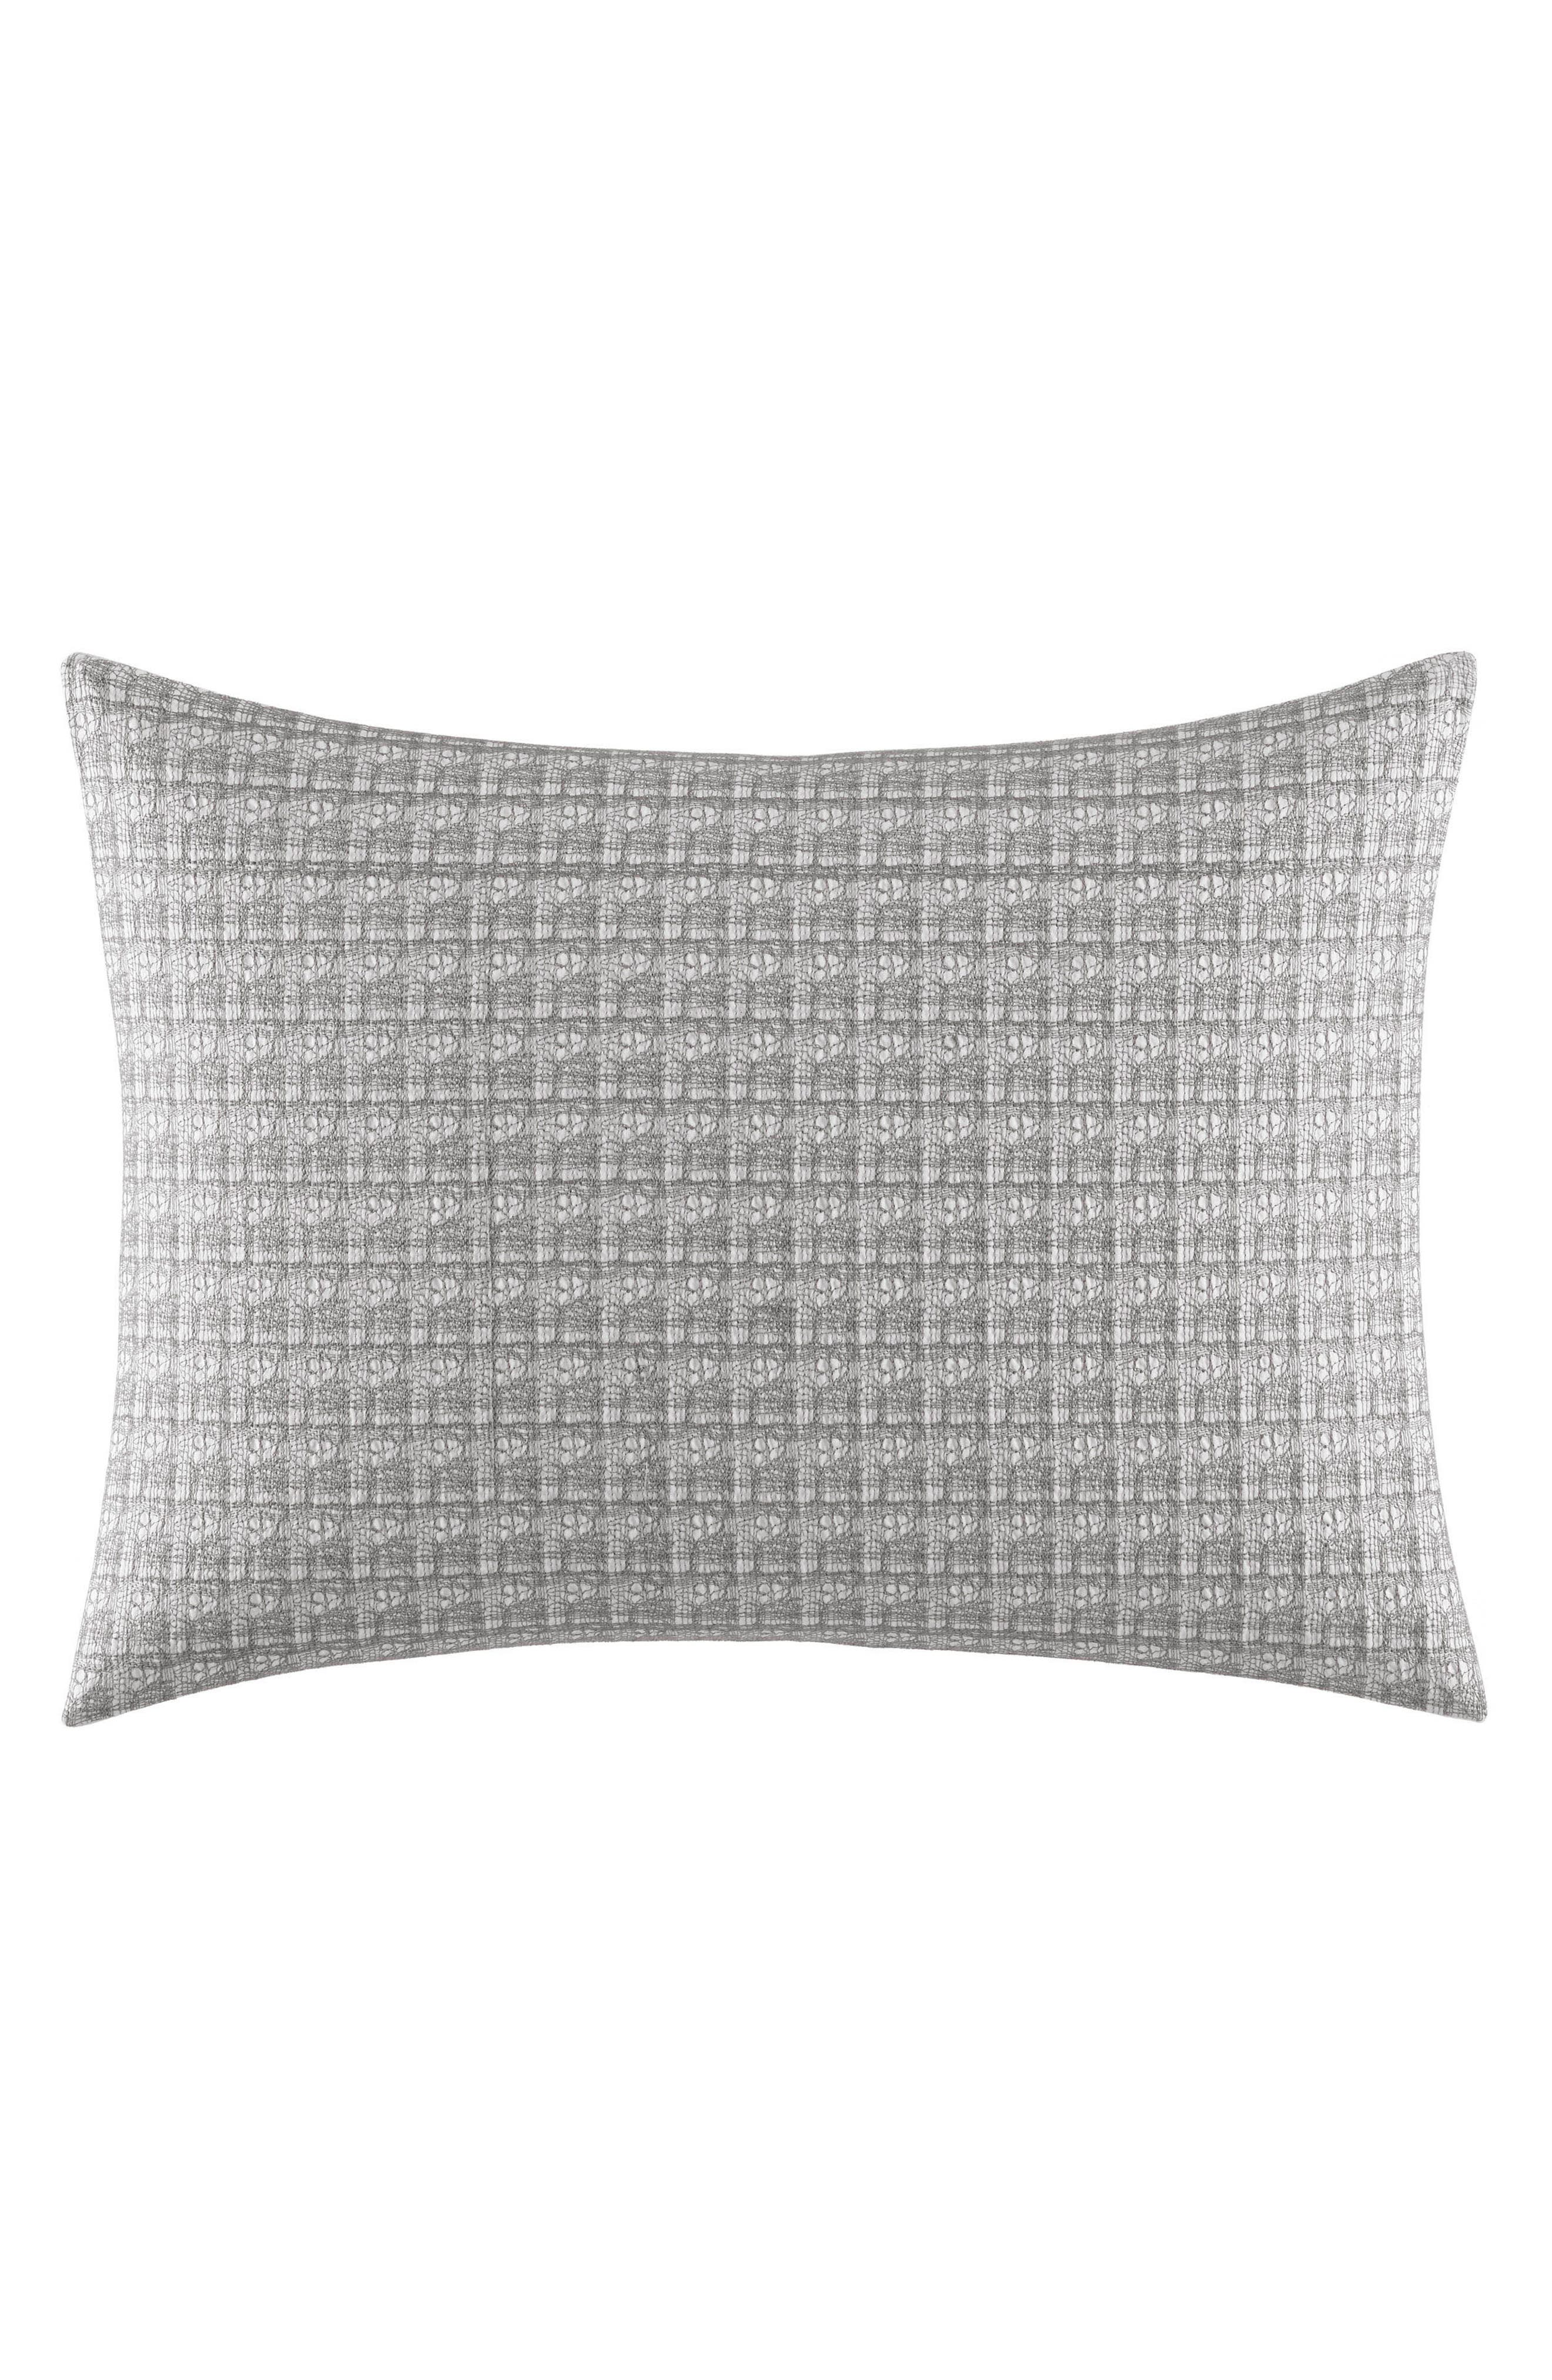 Vera Wang Mirrored Breakfast Accent Pillow